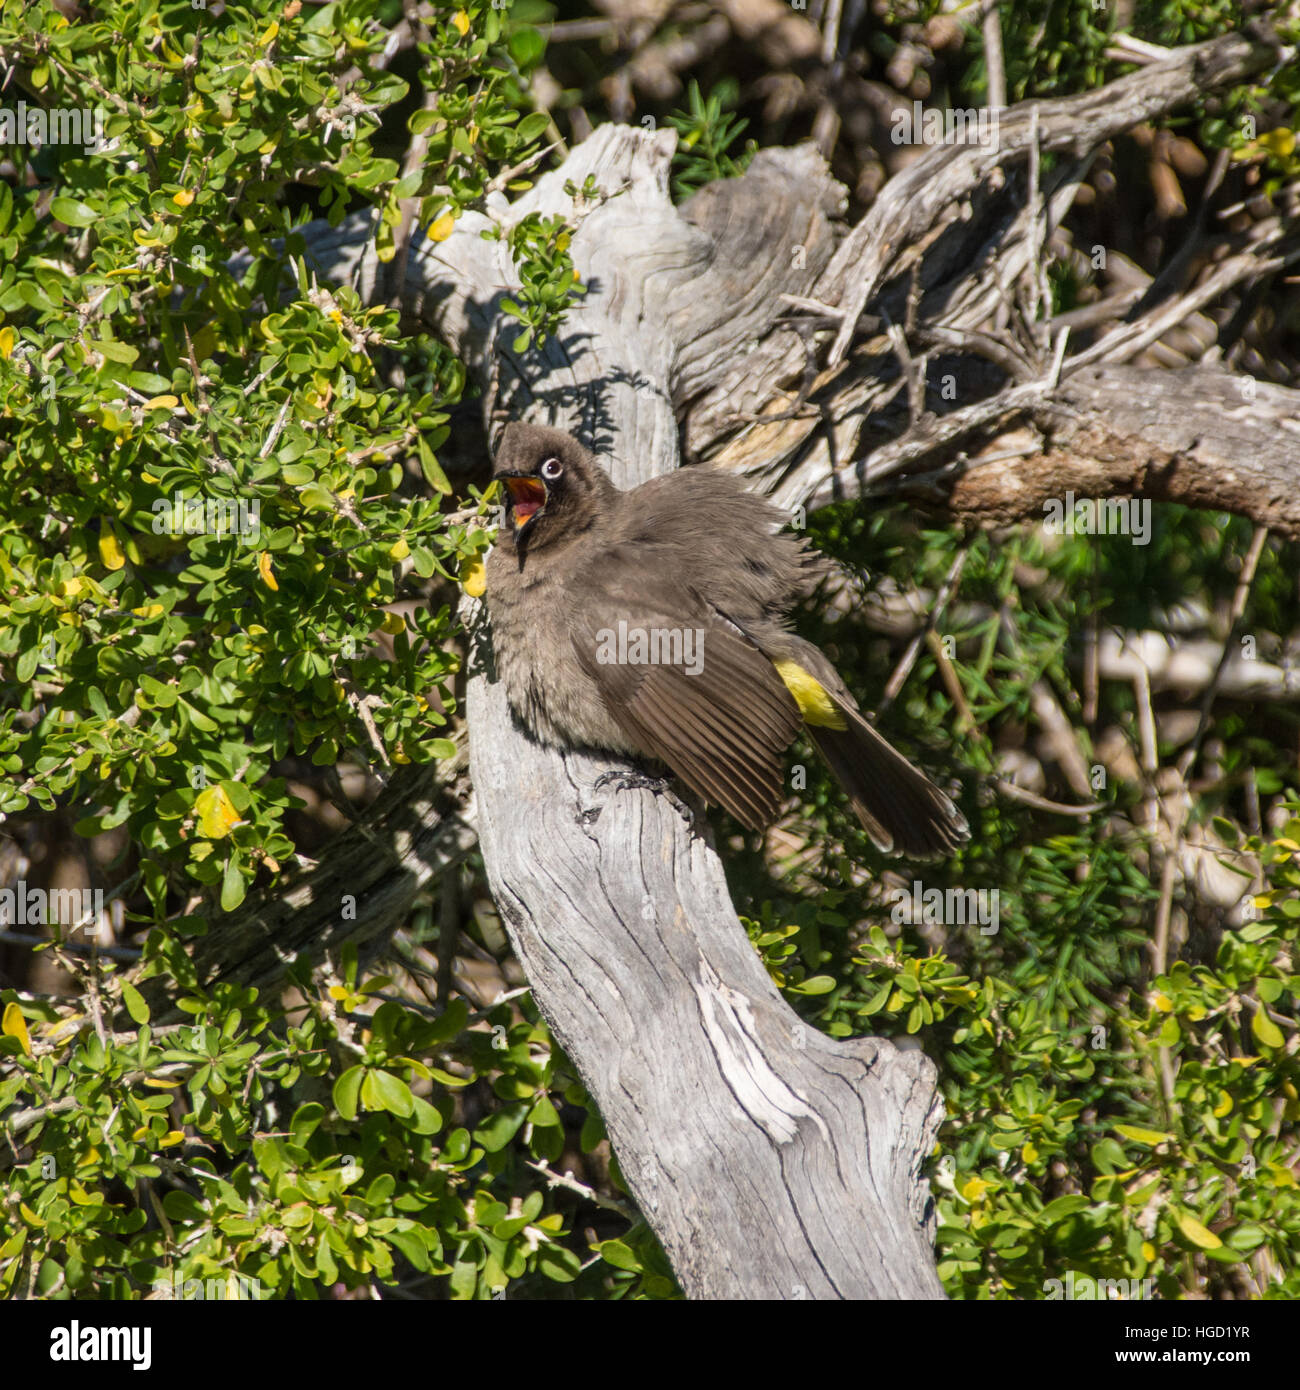 A Cape Bulbul perched singing on a branch in Southern Africa Stock Photo